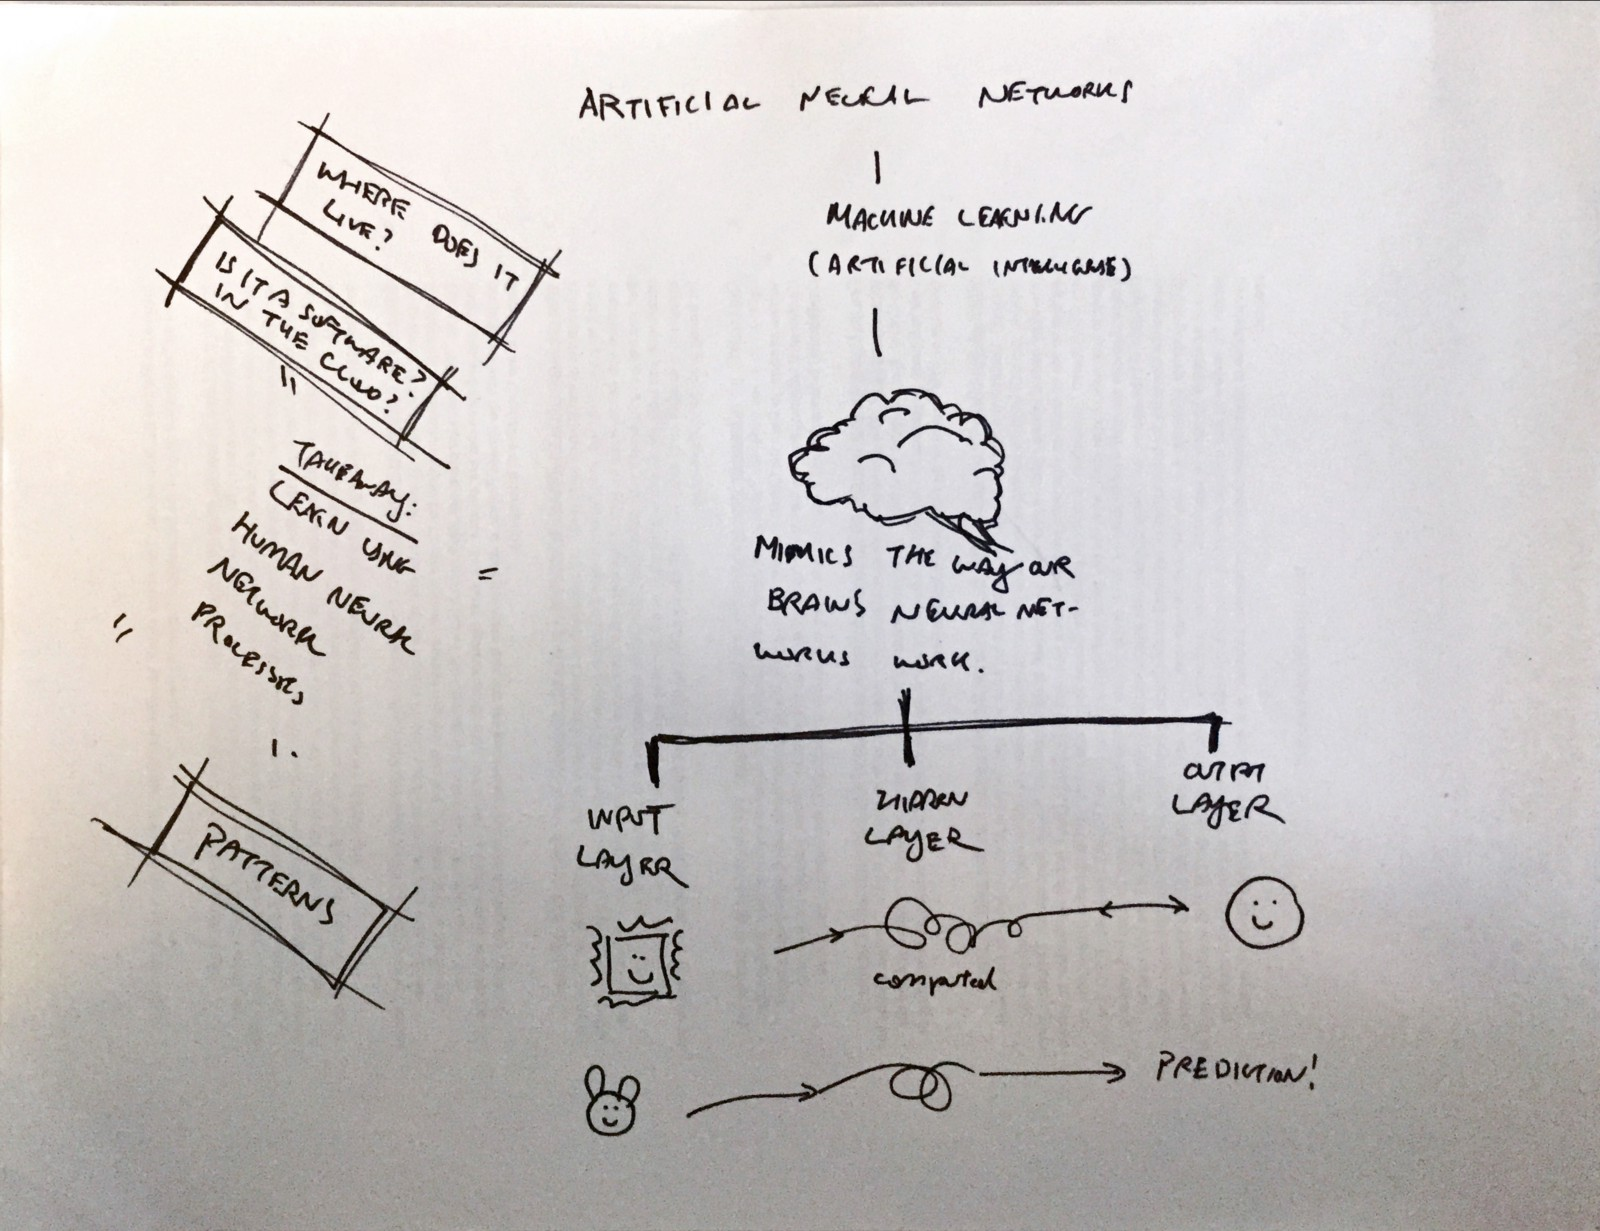 Making Abstract Concrete Artificial Neural Networks Circuit Diagram Xkcd Explained Mings Illustration Of My Explanation Anns As Well Some Questions She Had